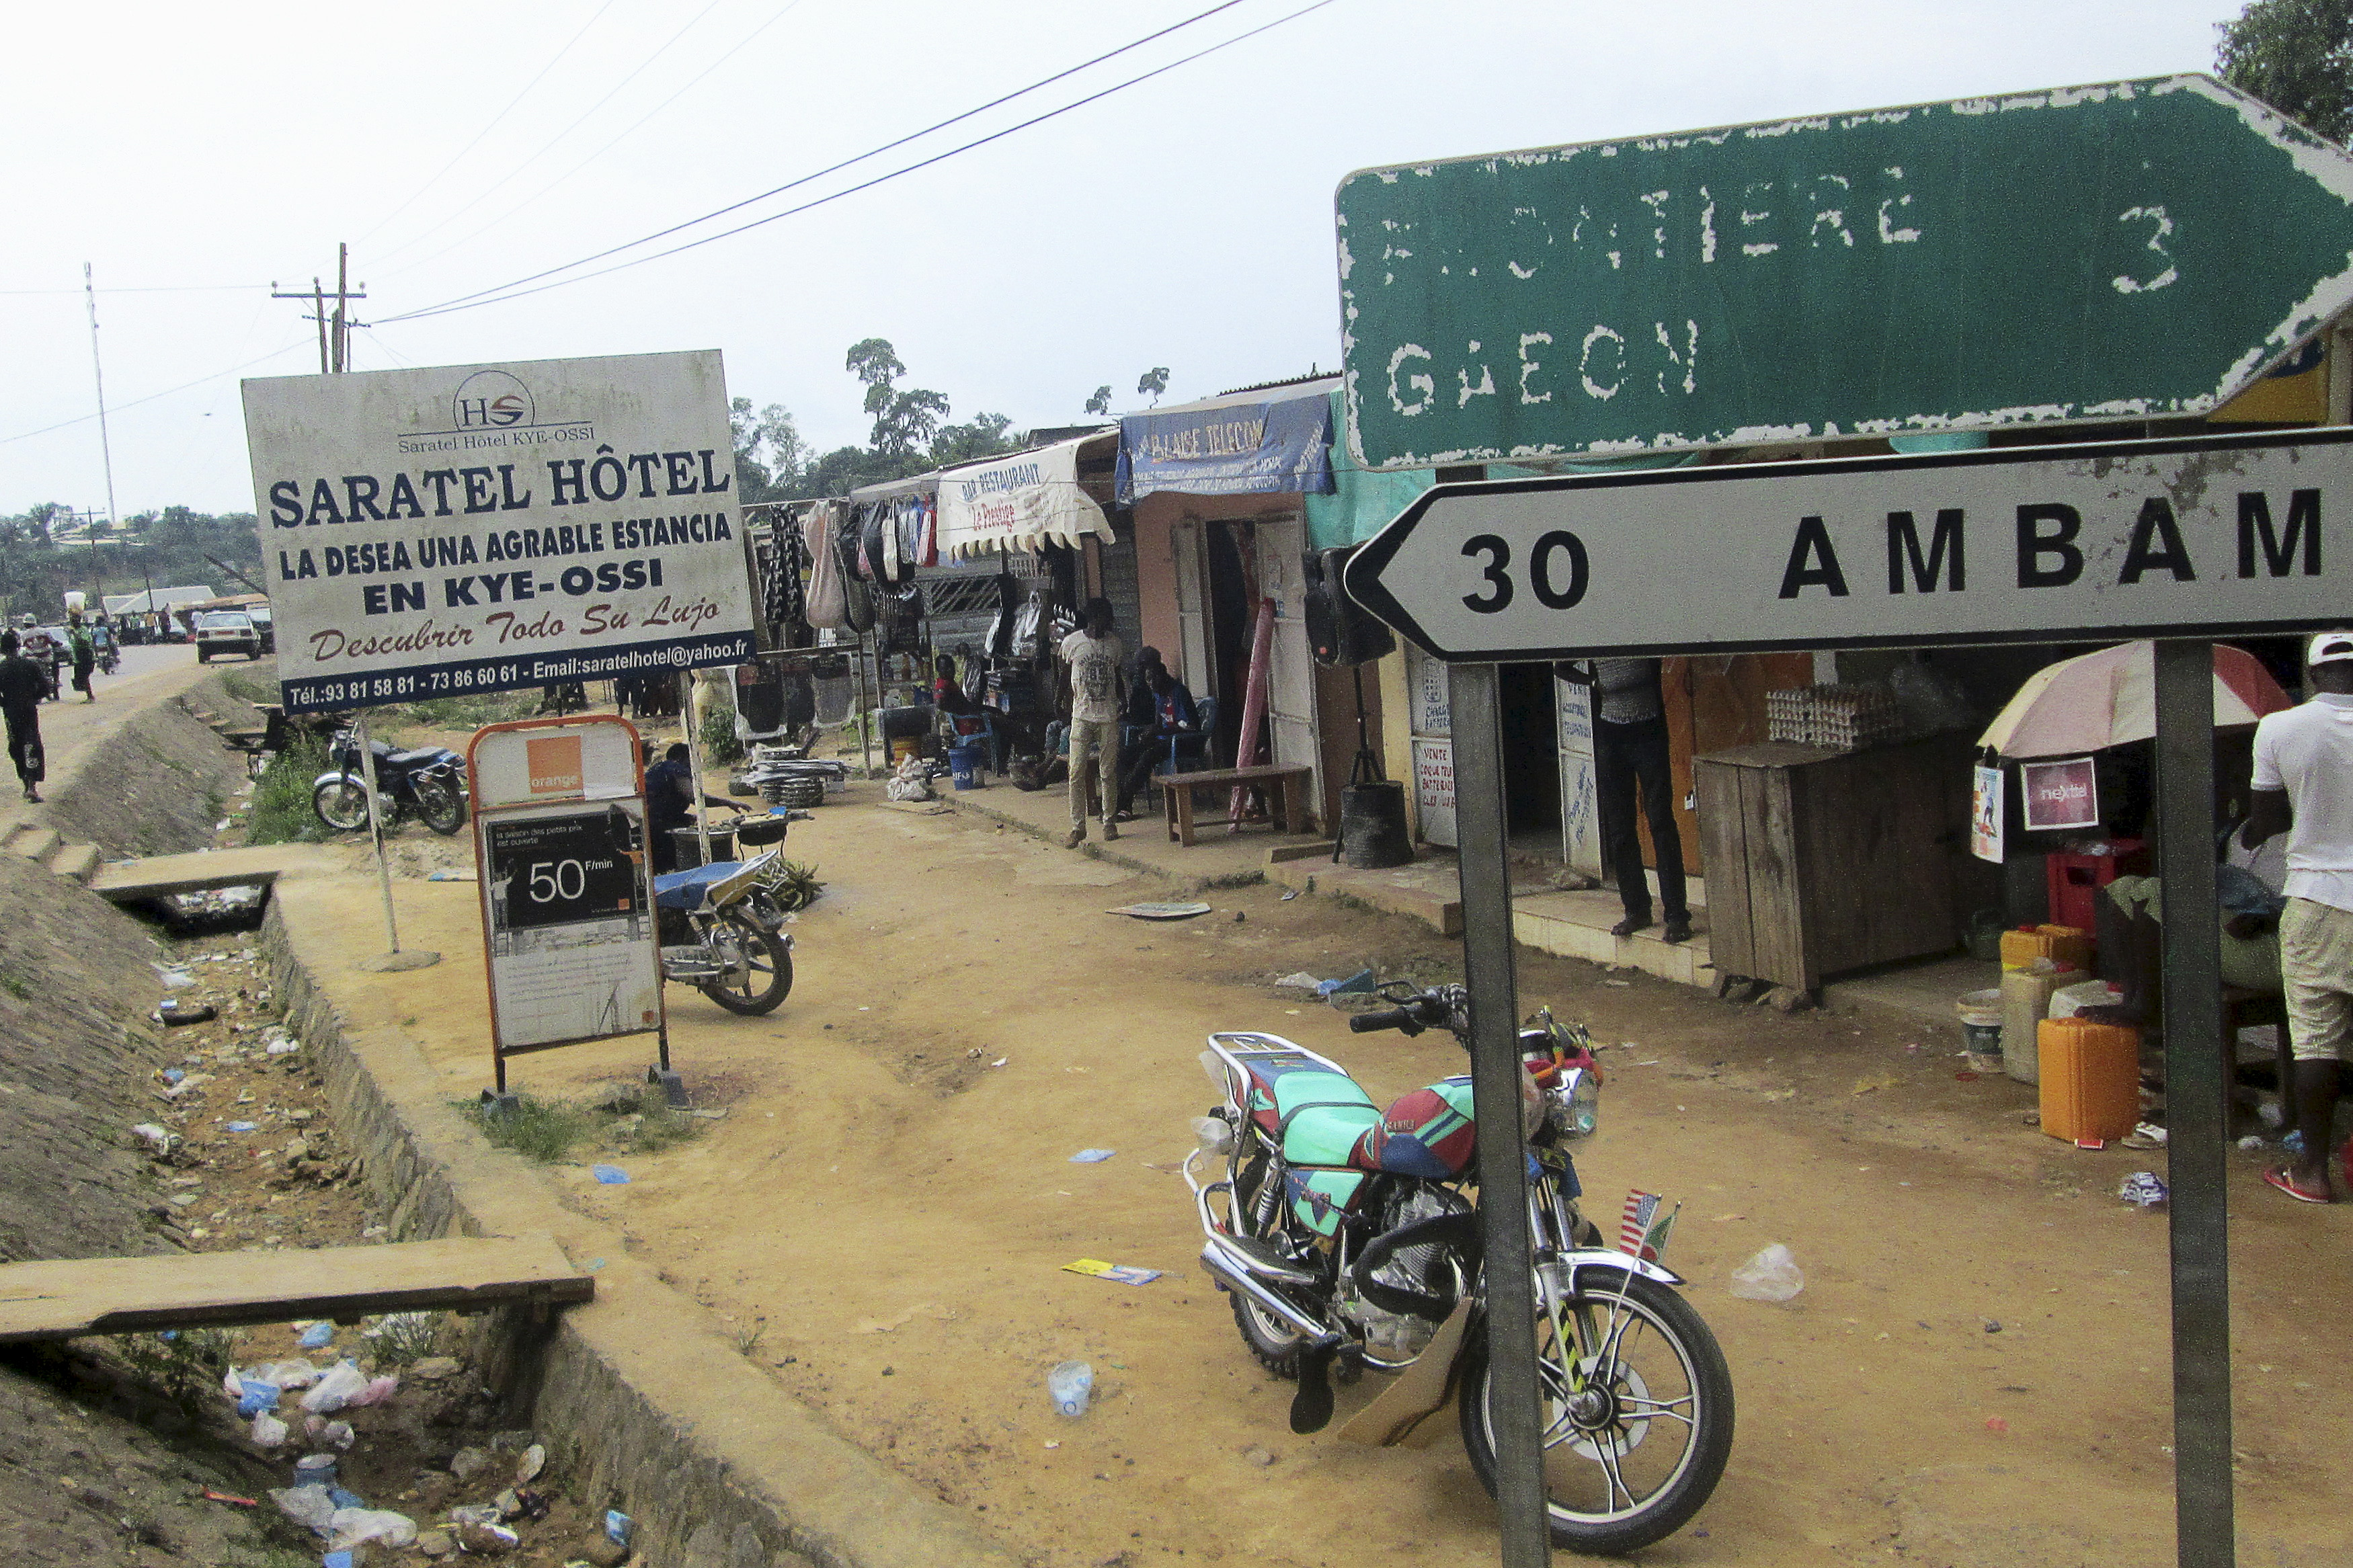 Signs are seen on the border with Equatorial Guinea and Gabon in Kye-Ossi